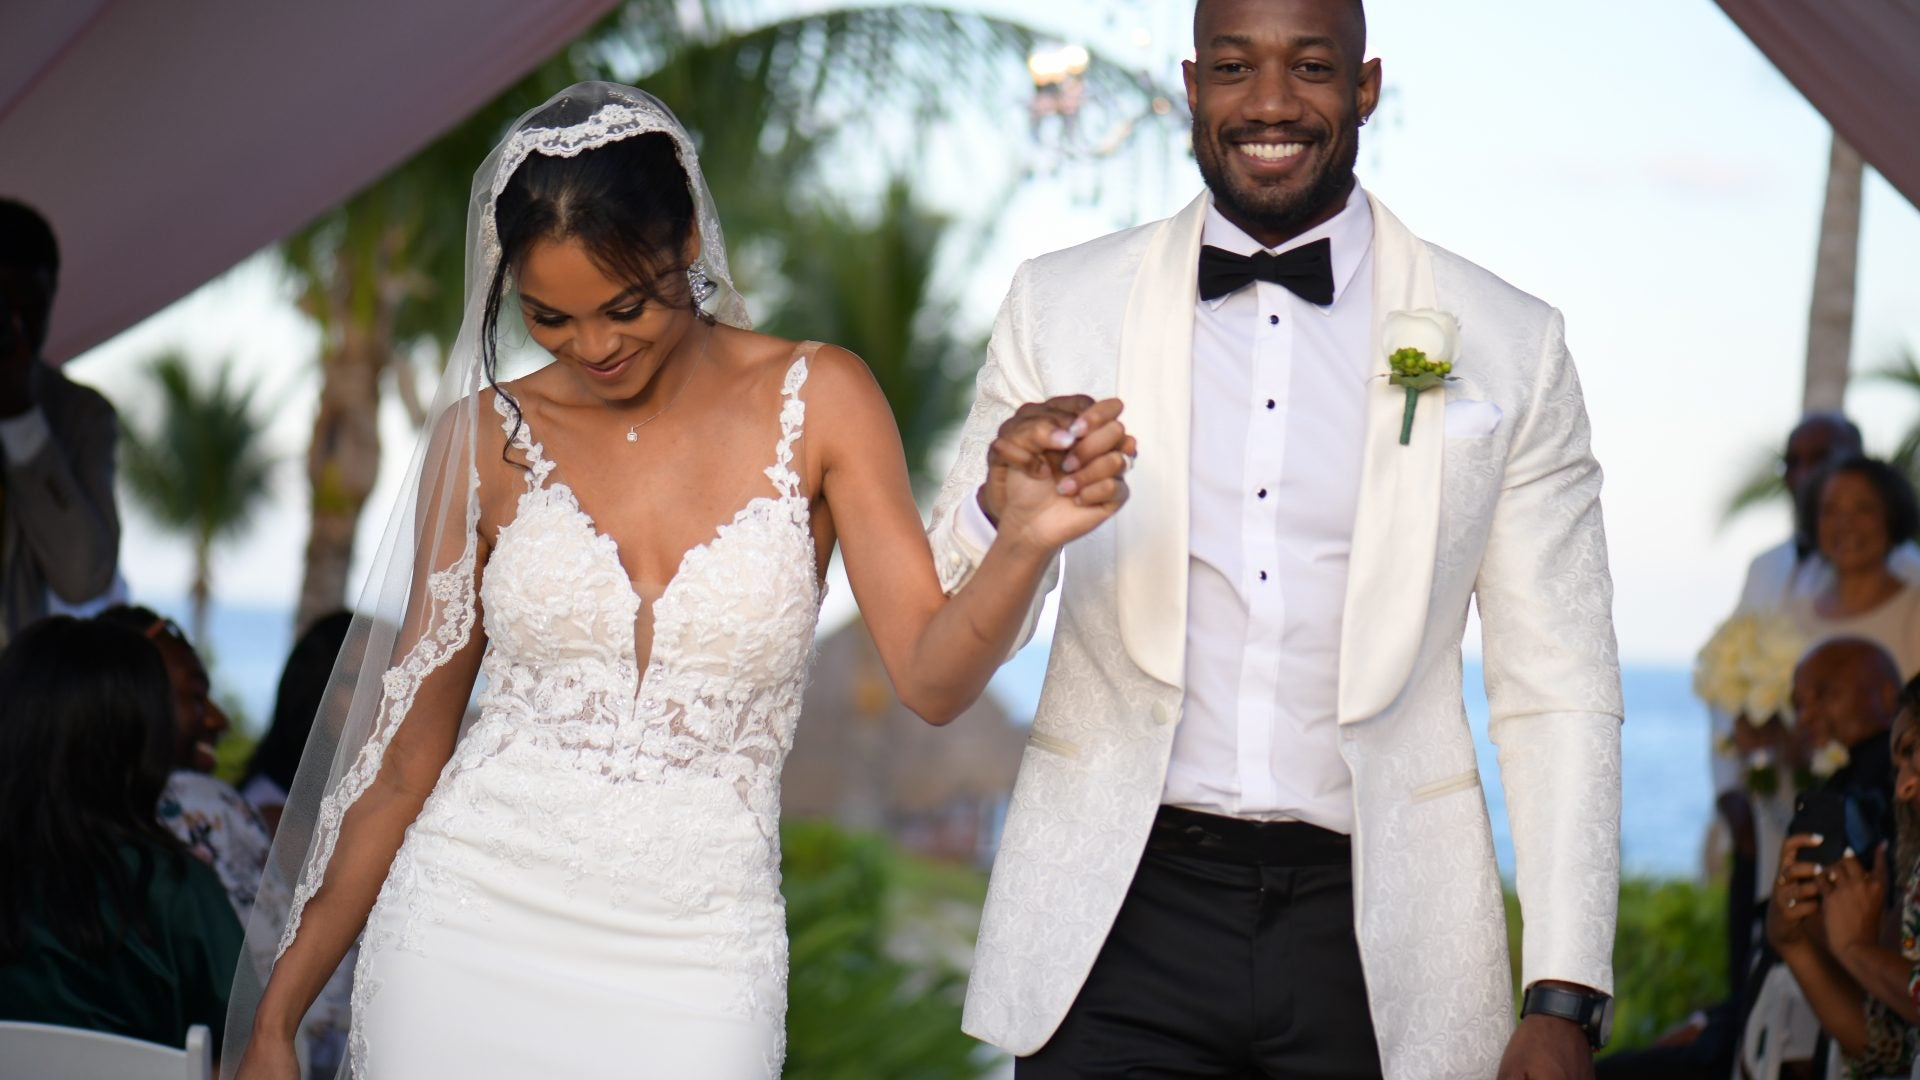 Bridal Bliss: Lateesha And Tristan's Destination Wedding In Mexico